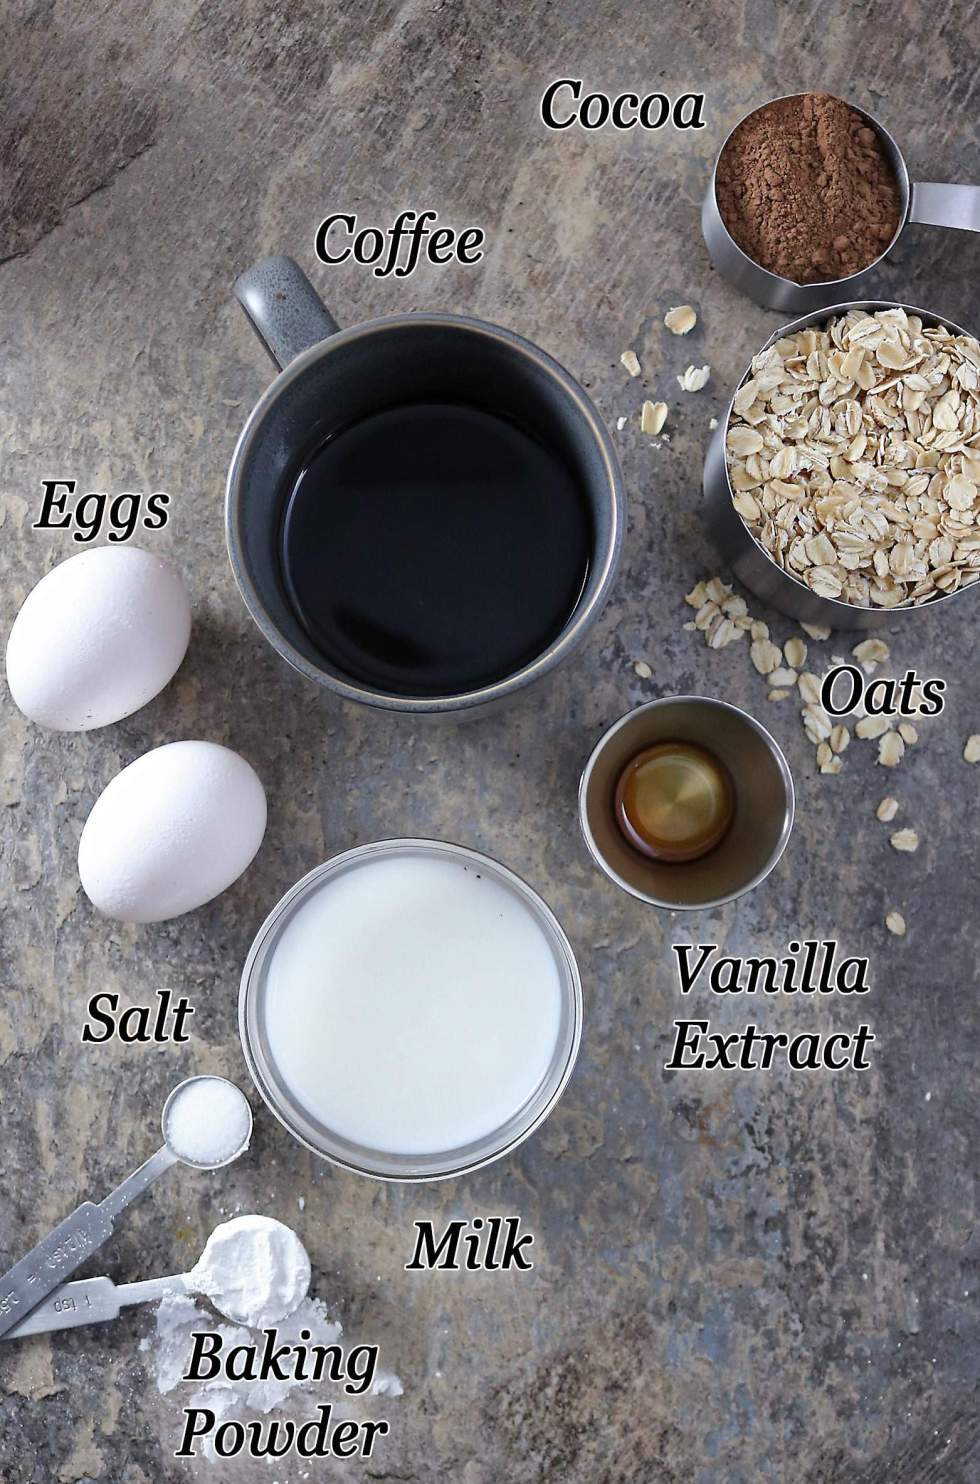 Ingredients to make Chocolate (Mocha) Pancakes